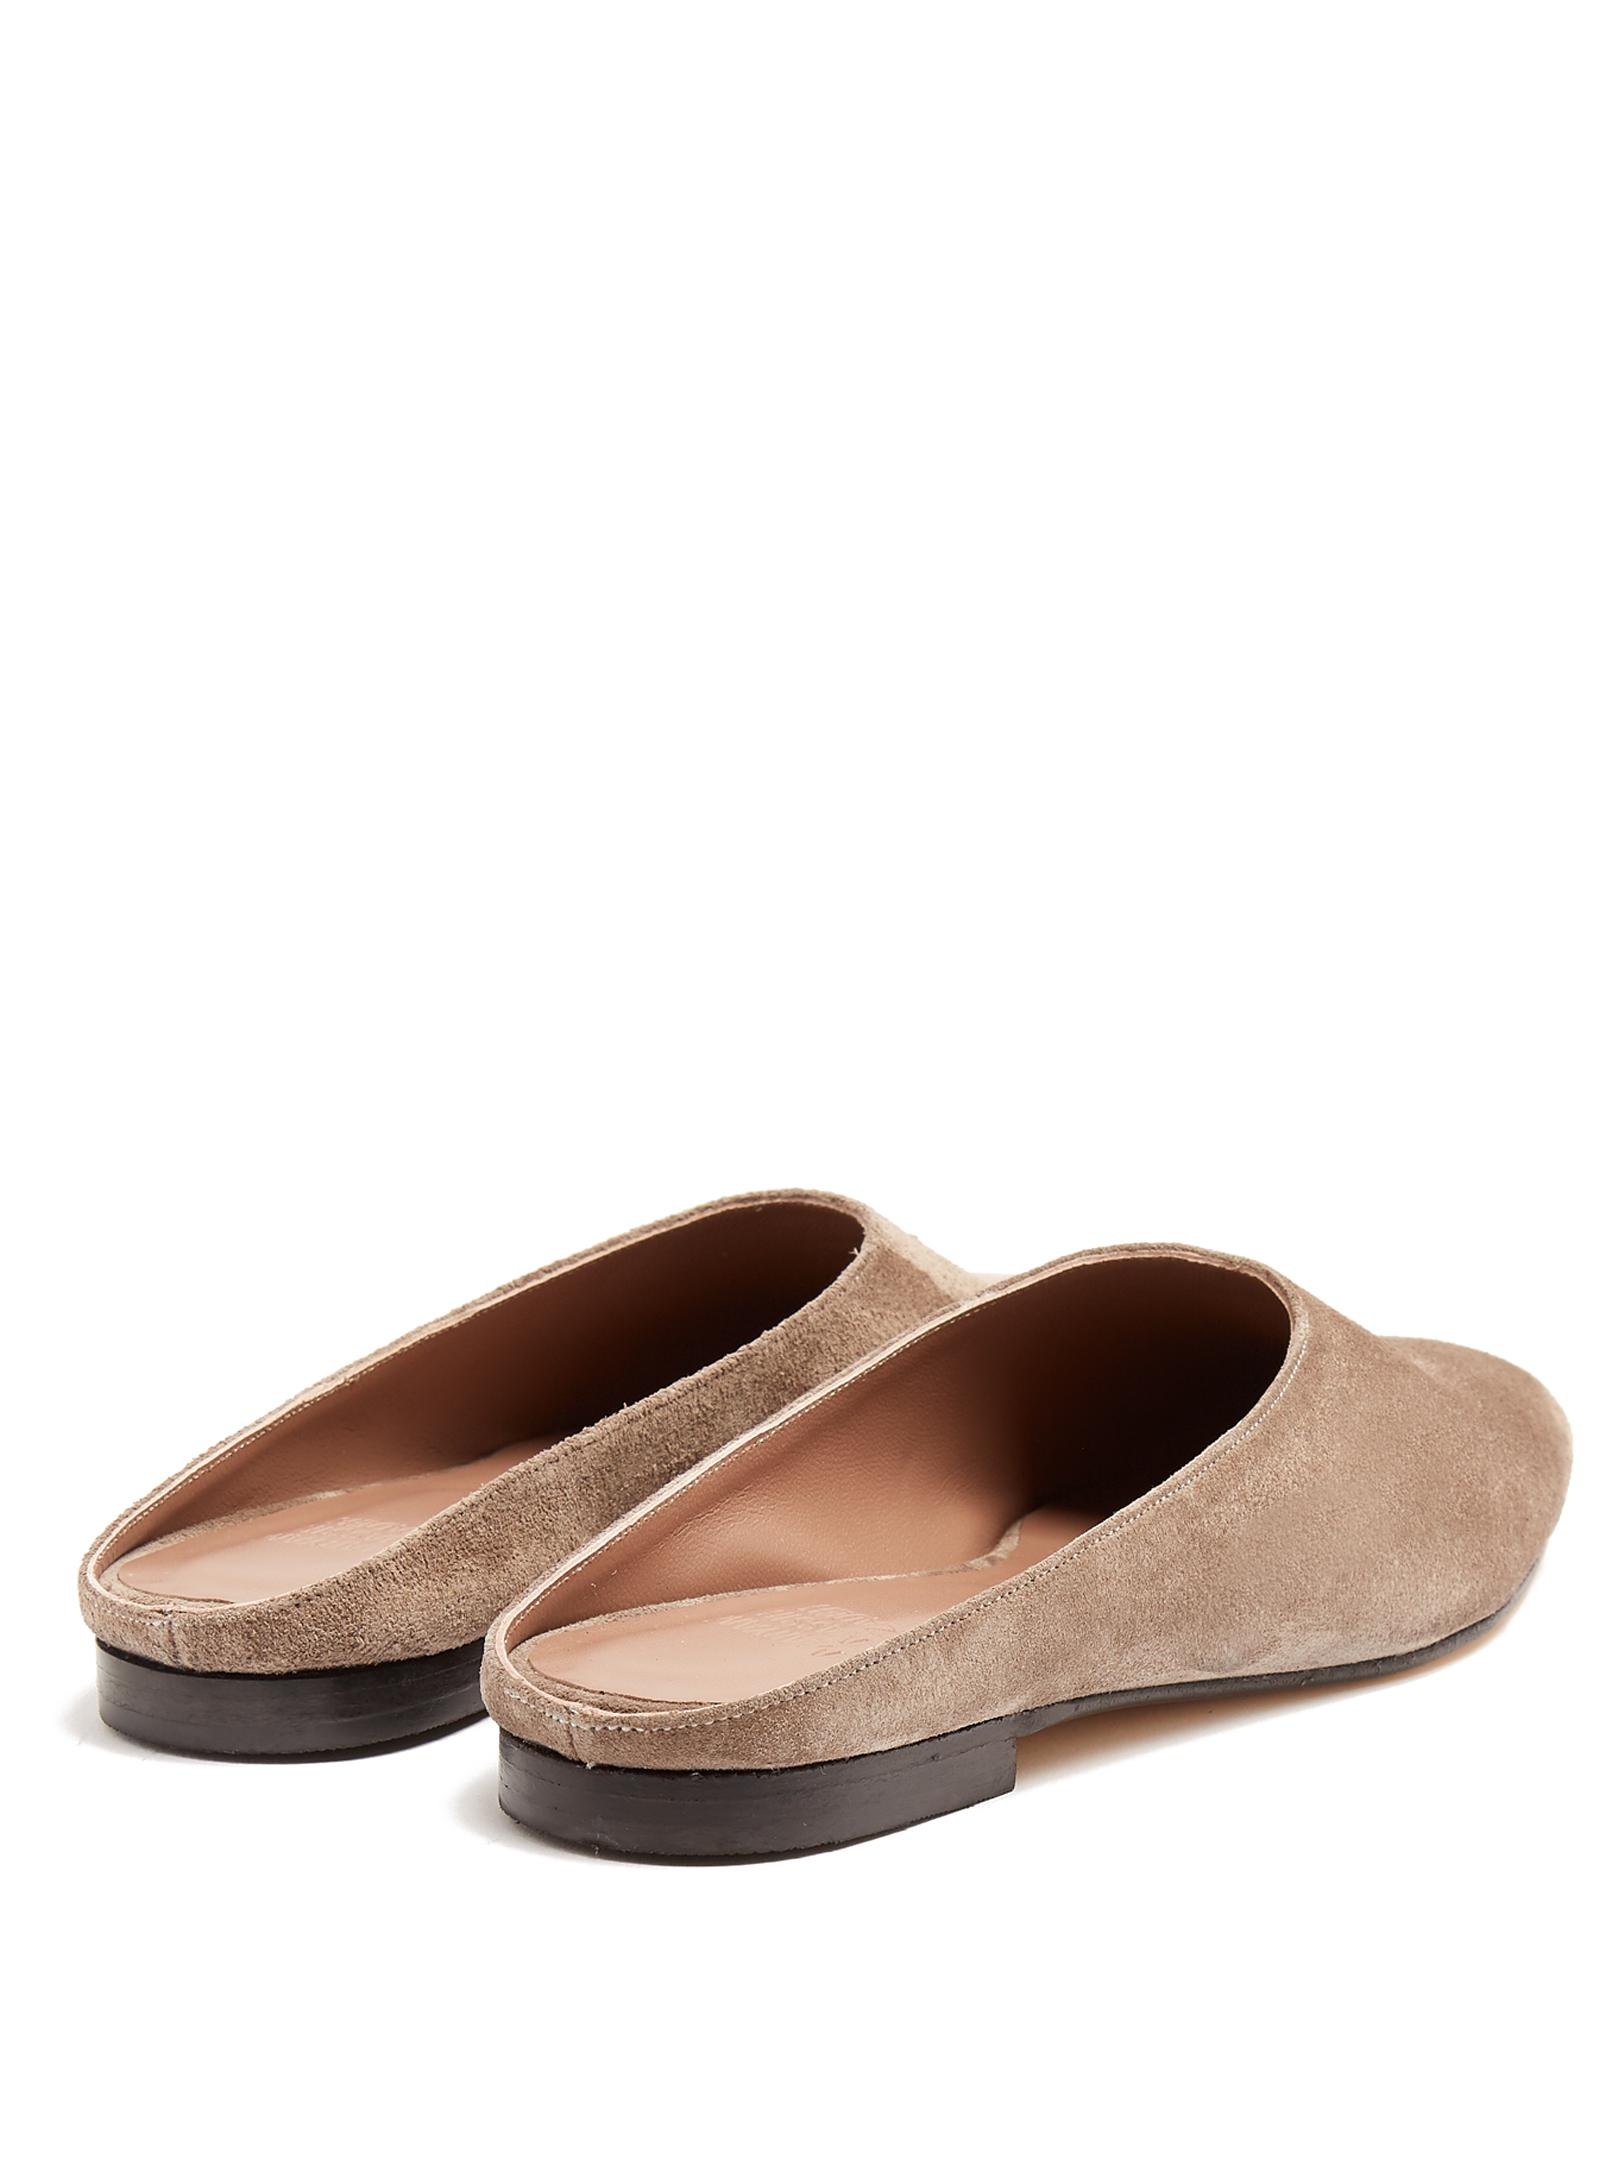 Excellent Cheap Online Maryam backless suede loafers Maryam Nassir Zadeh Sast Sale Online Outlet Exclusive pGcoAQOg9